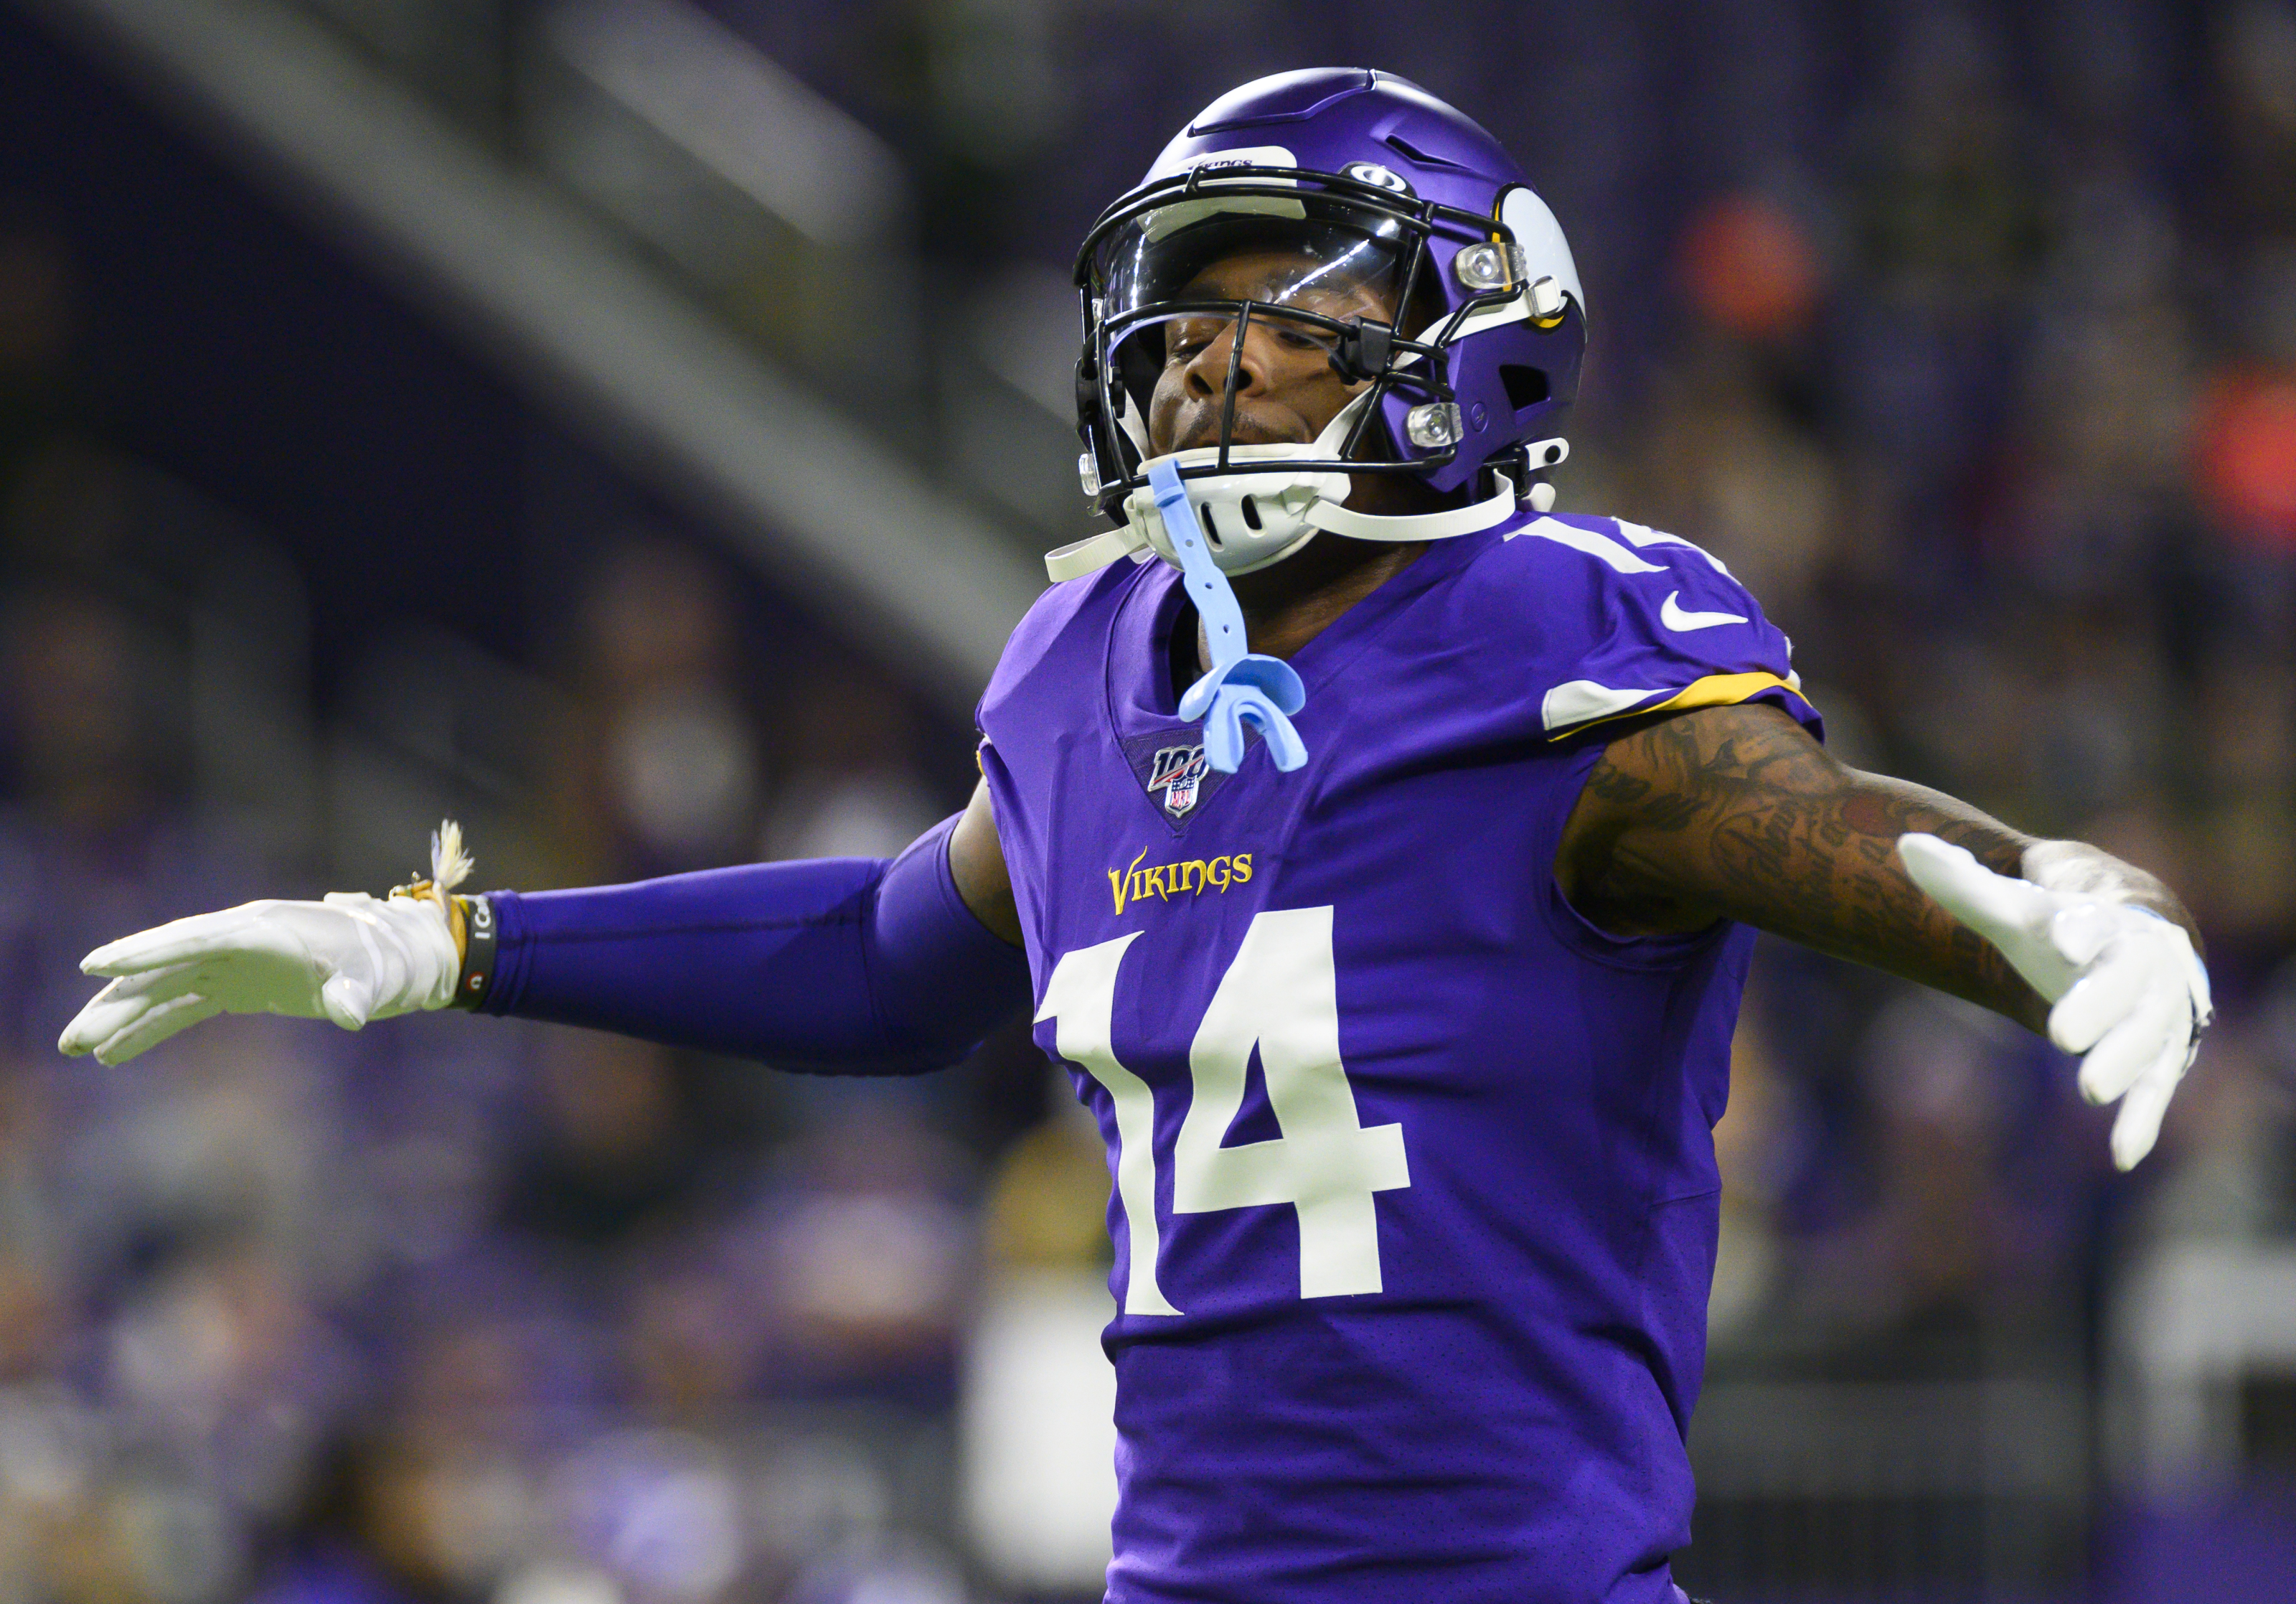 Former Vikings linebacker thinks Stefon Diggs is trying to get traded